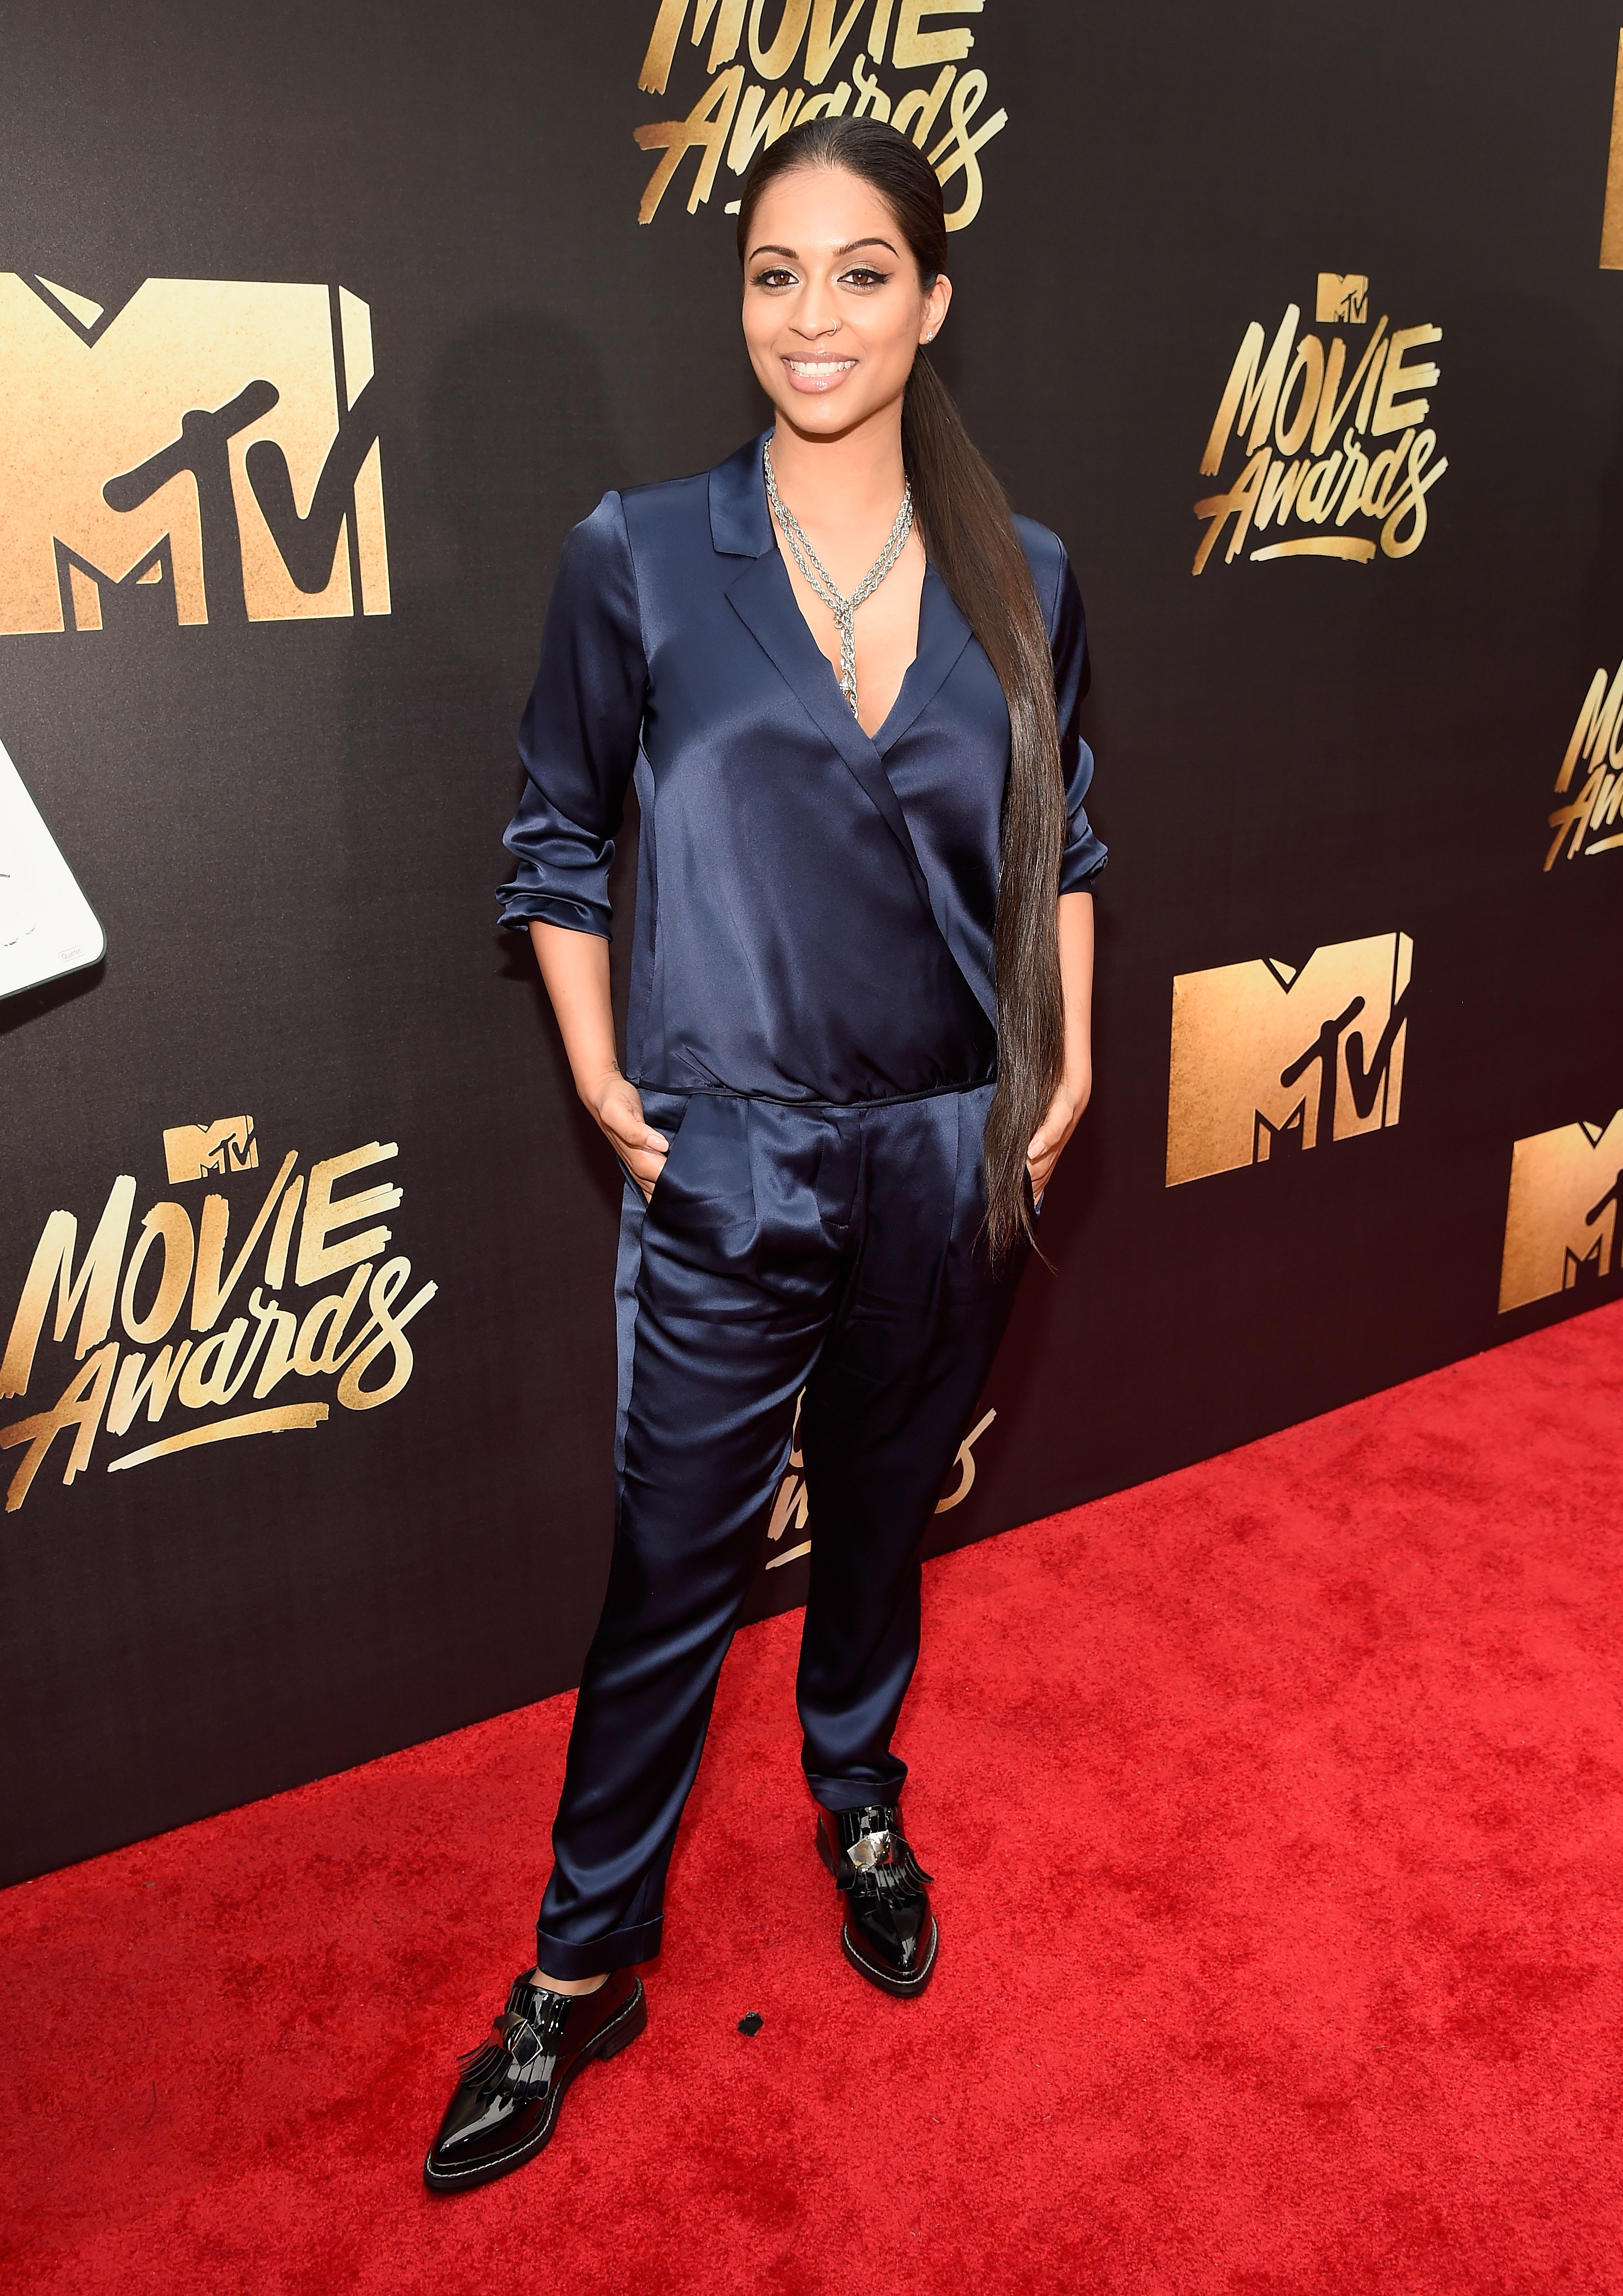 Lilly Singh attends the 2016 MTV Movie Awards at Warner Bros. Studios on April 9, 2016 in Burbank, Calif.